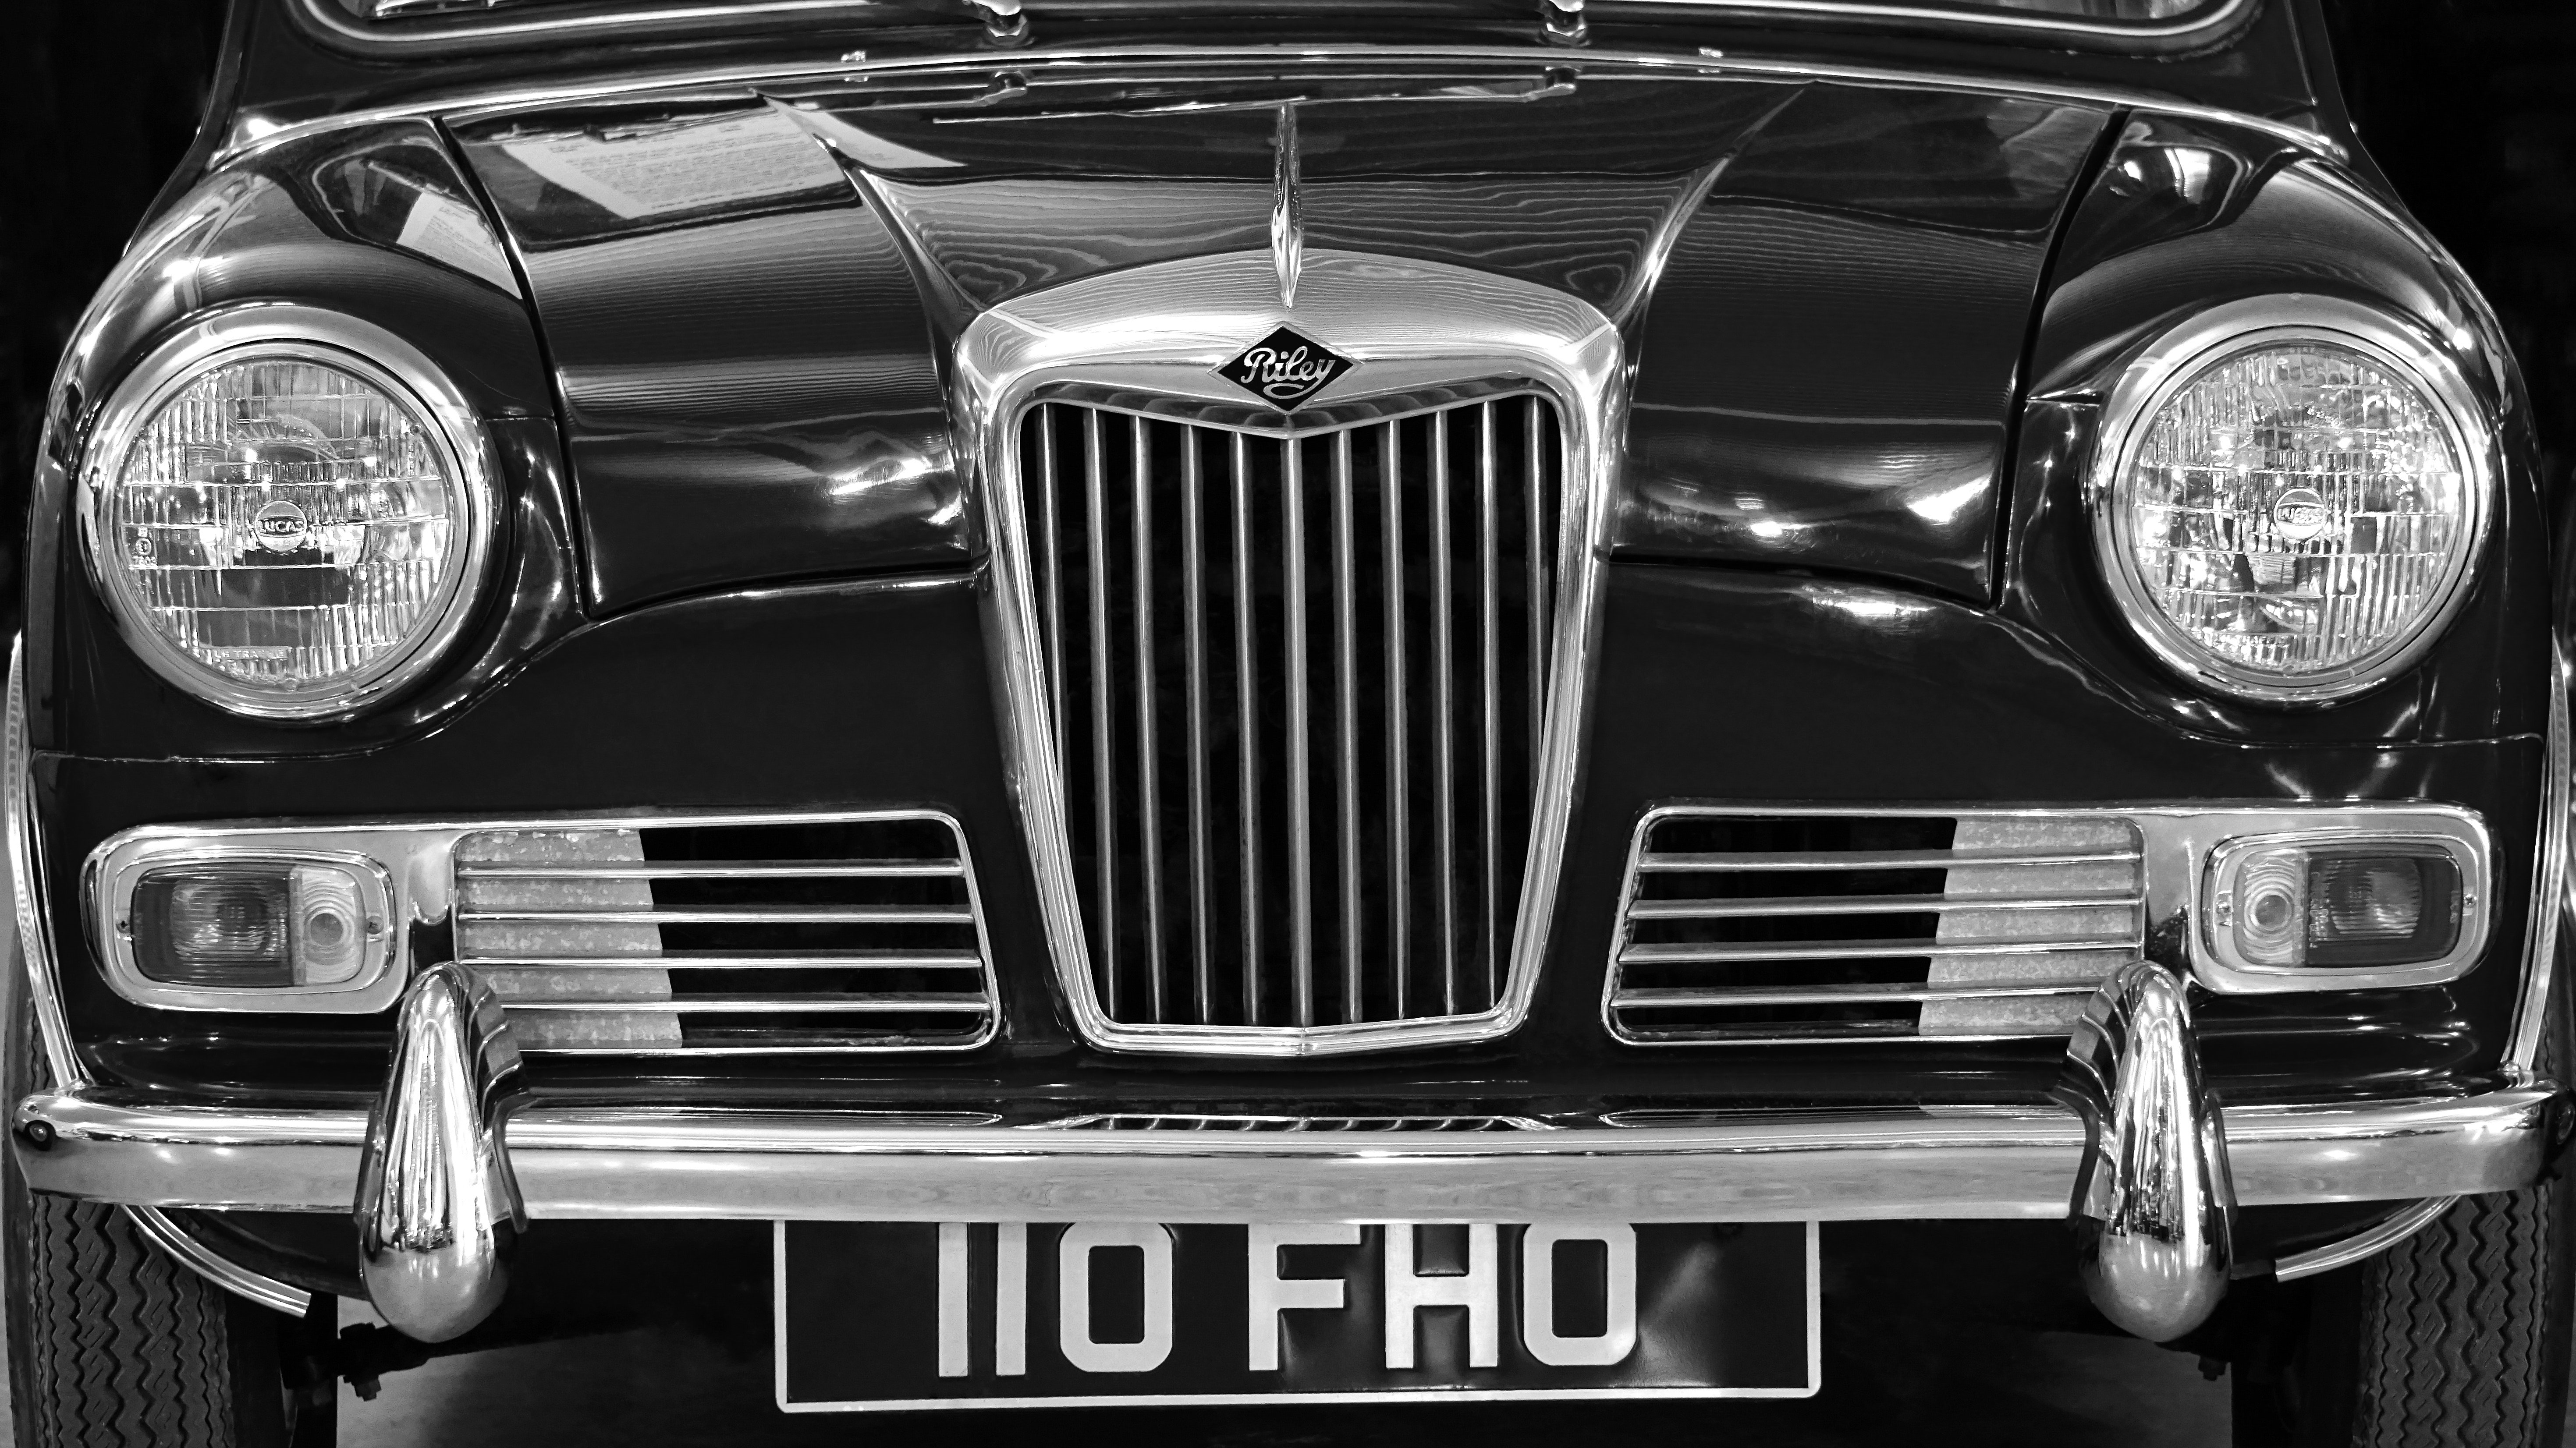 Free photo: Car in Front View Showing Grille - vehicle, vintage ...